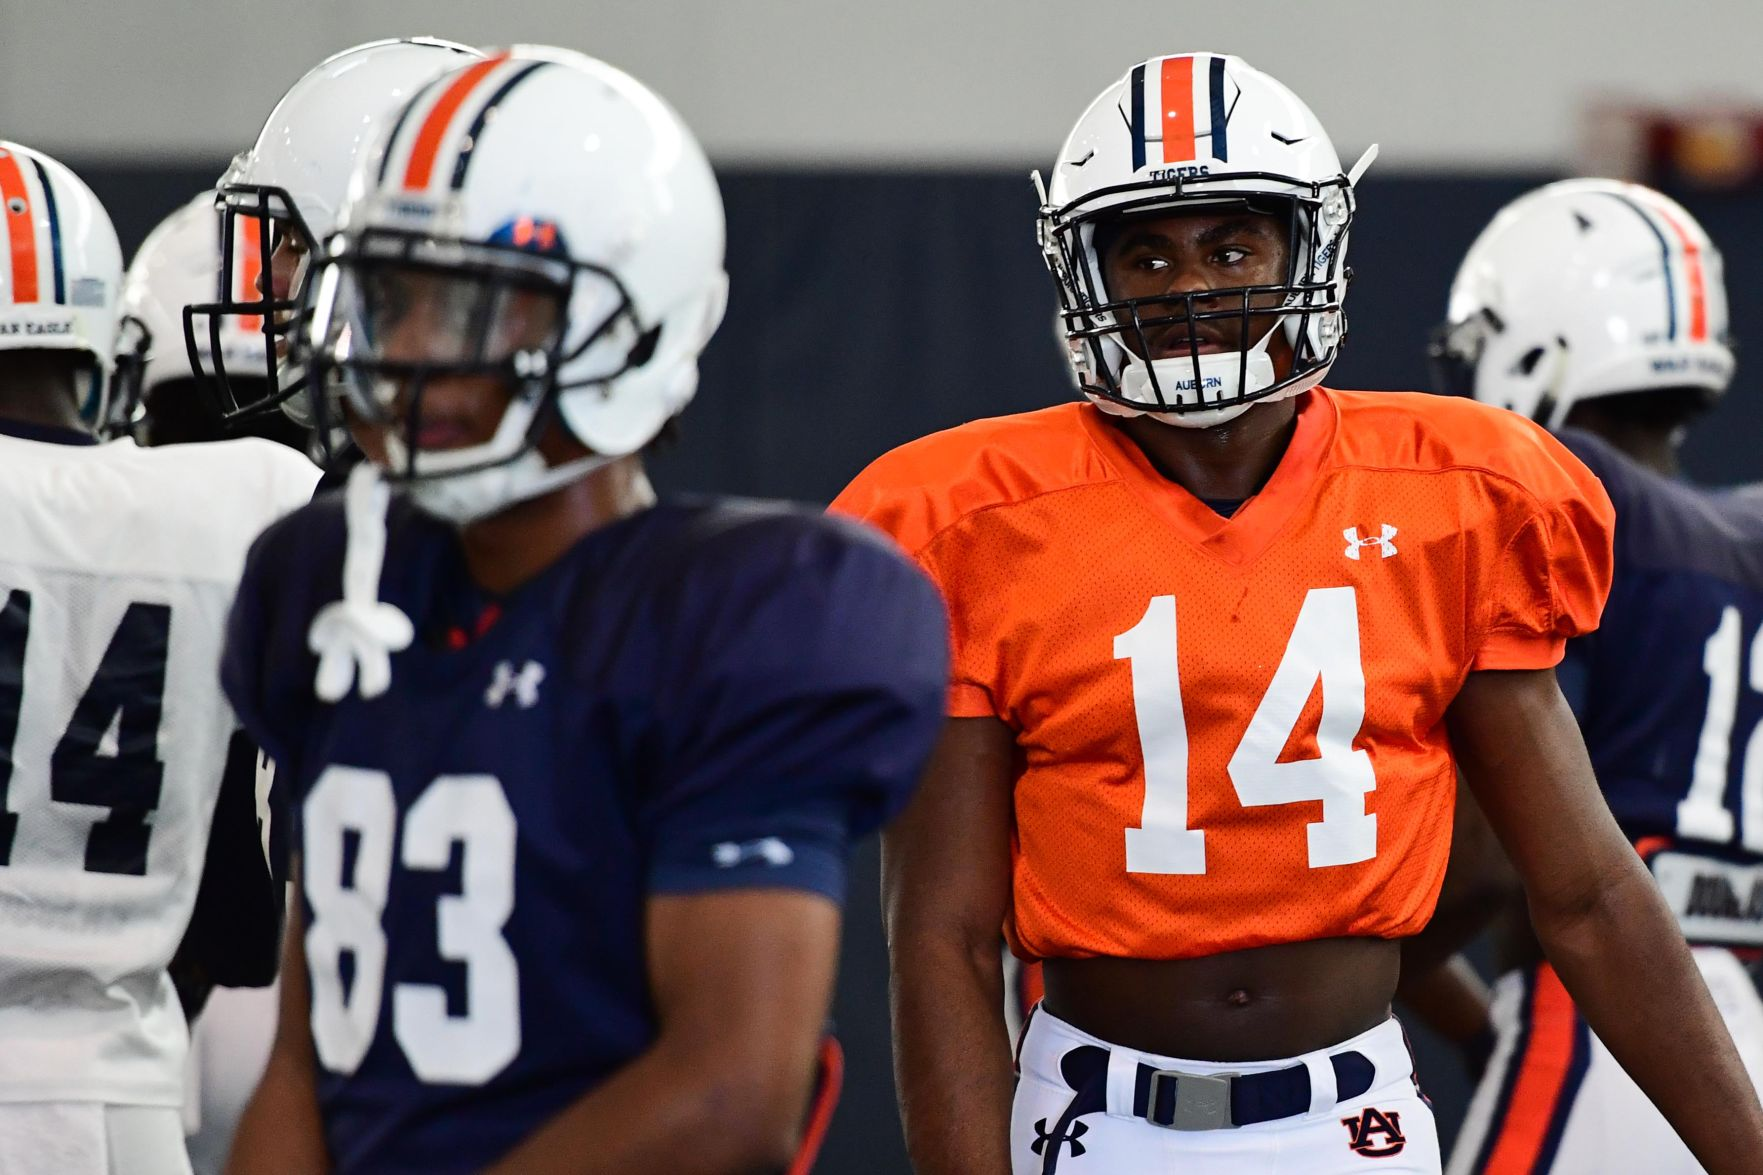 Stidham to start at QB for Auburn